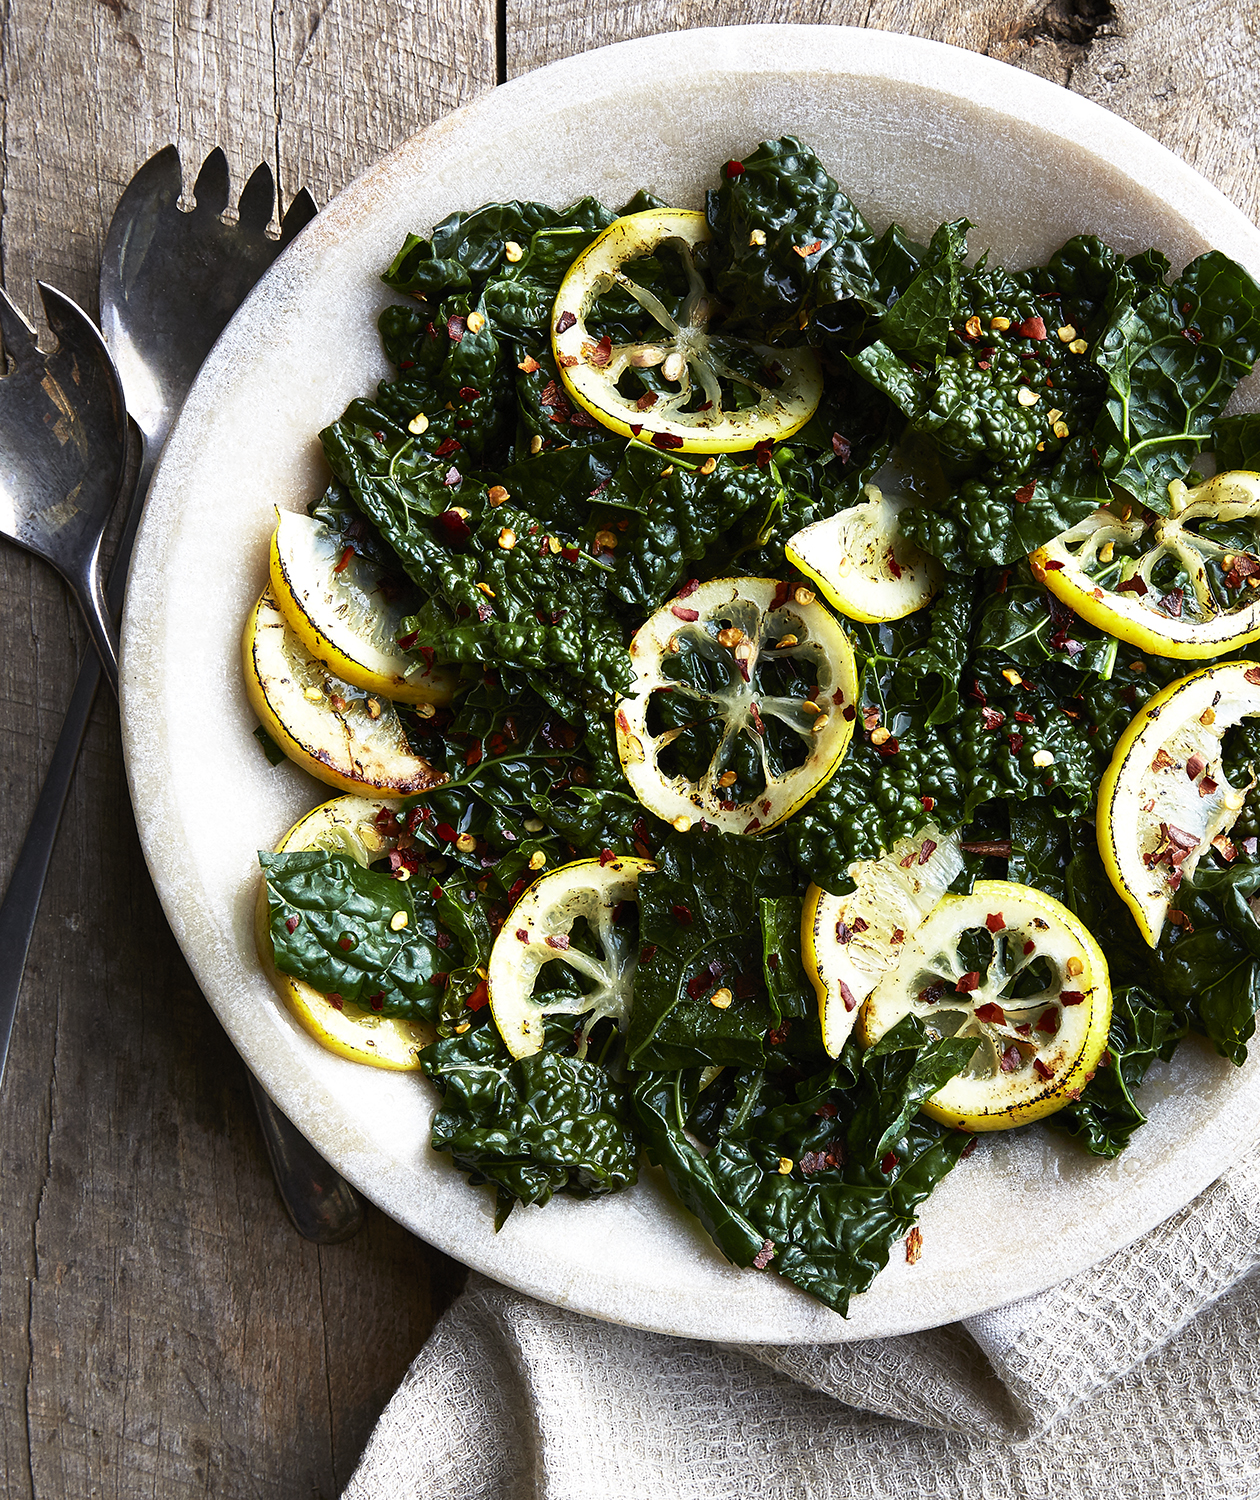 Sautéed Kale with Lemon Slices